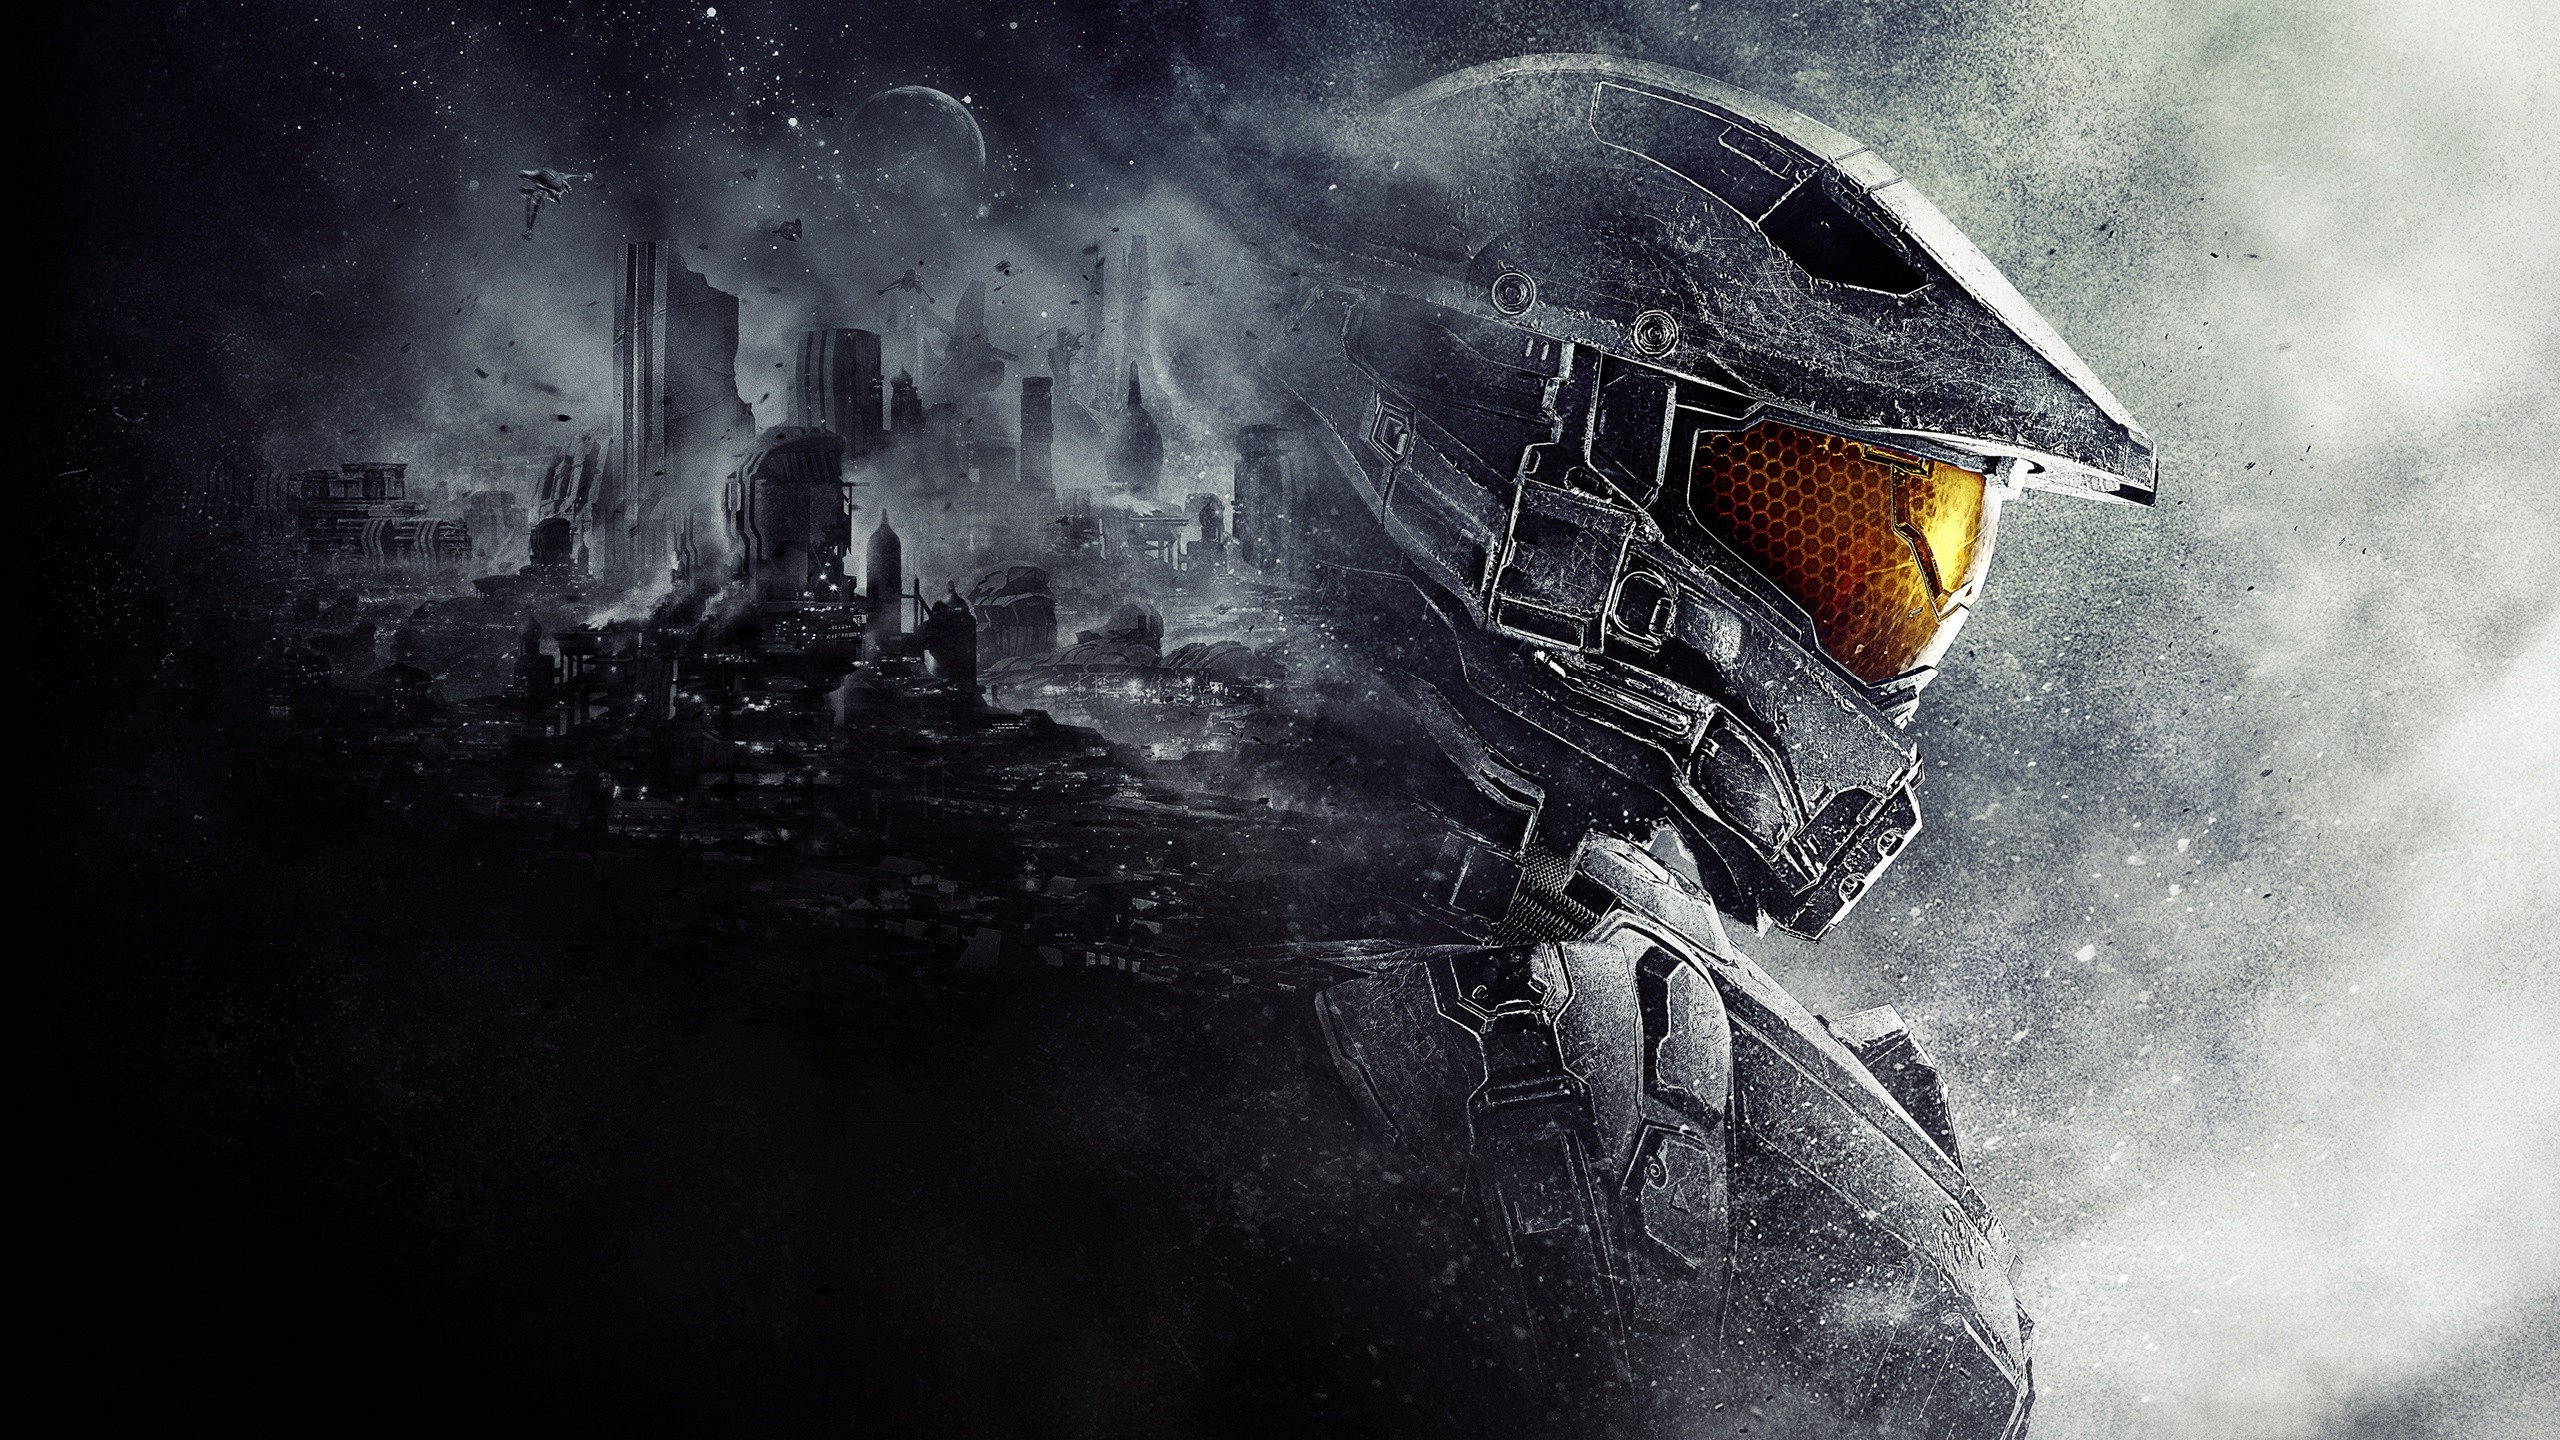 Halo 5 Master Chief Halo 343 Industries Video Games 2560x1440